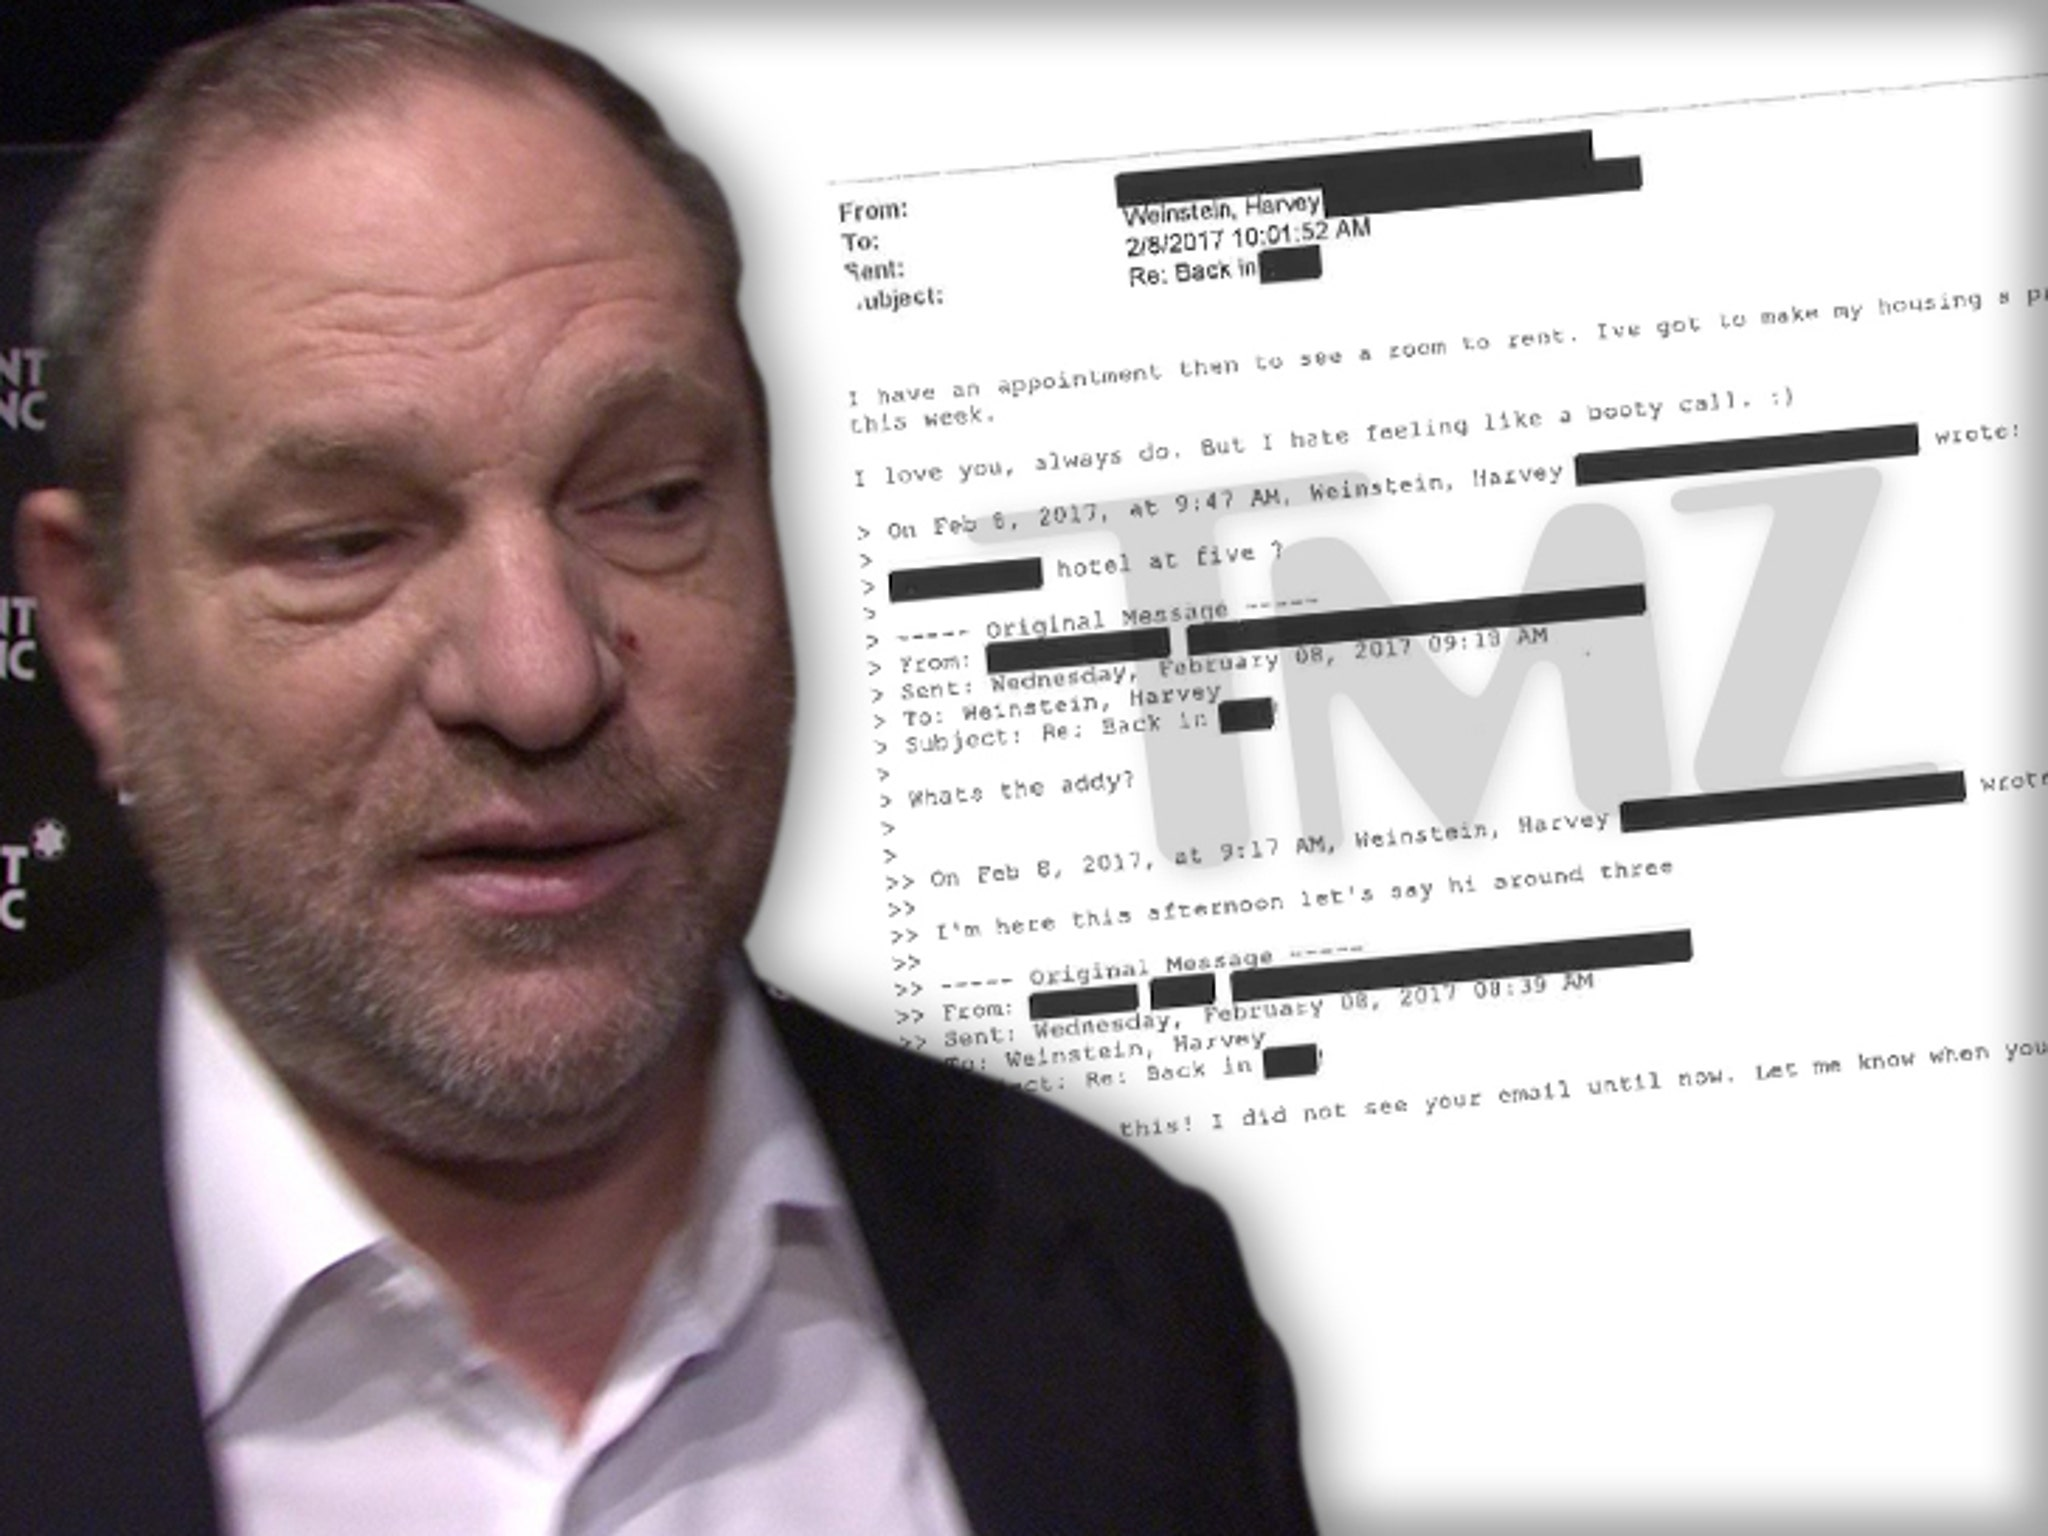 Harvey Weinstein's Alleged Victim Professed Love for Him After